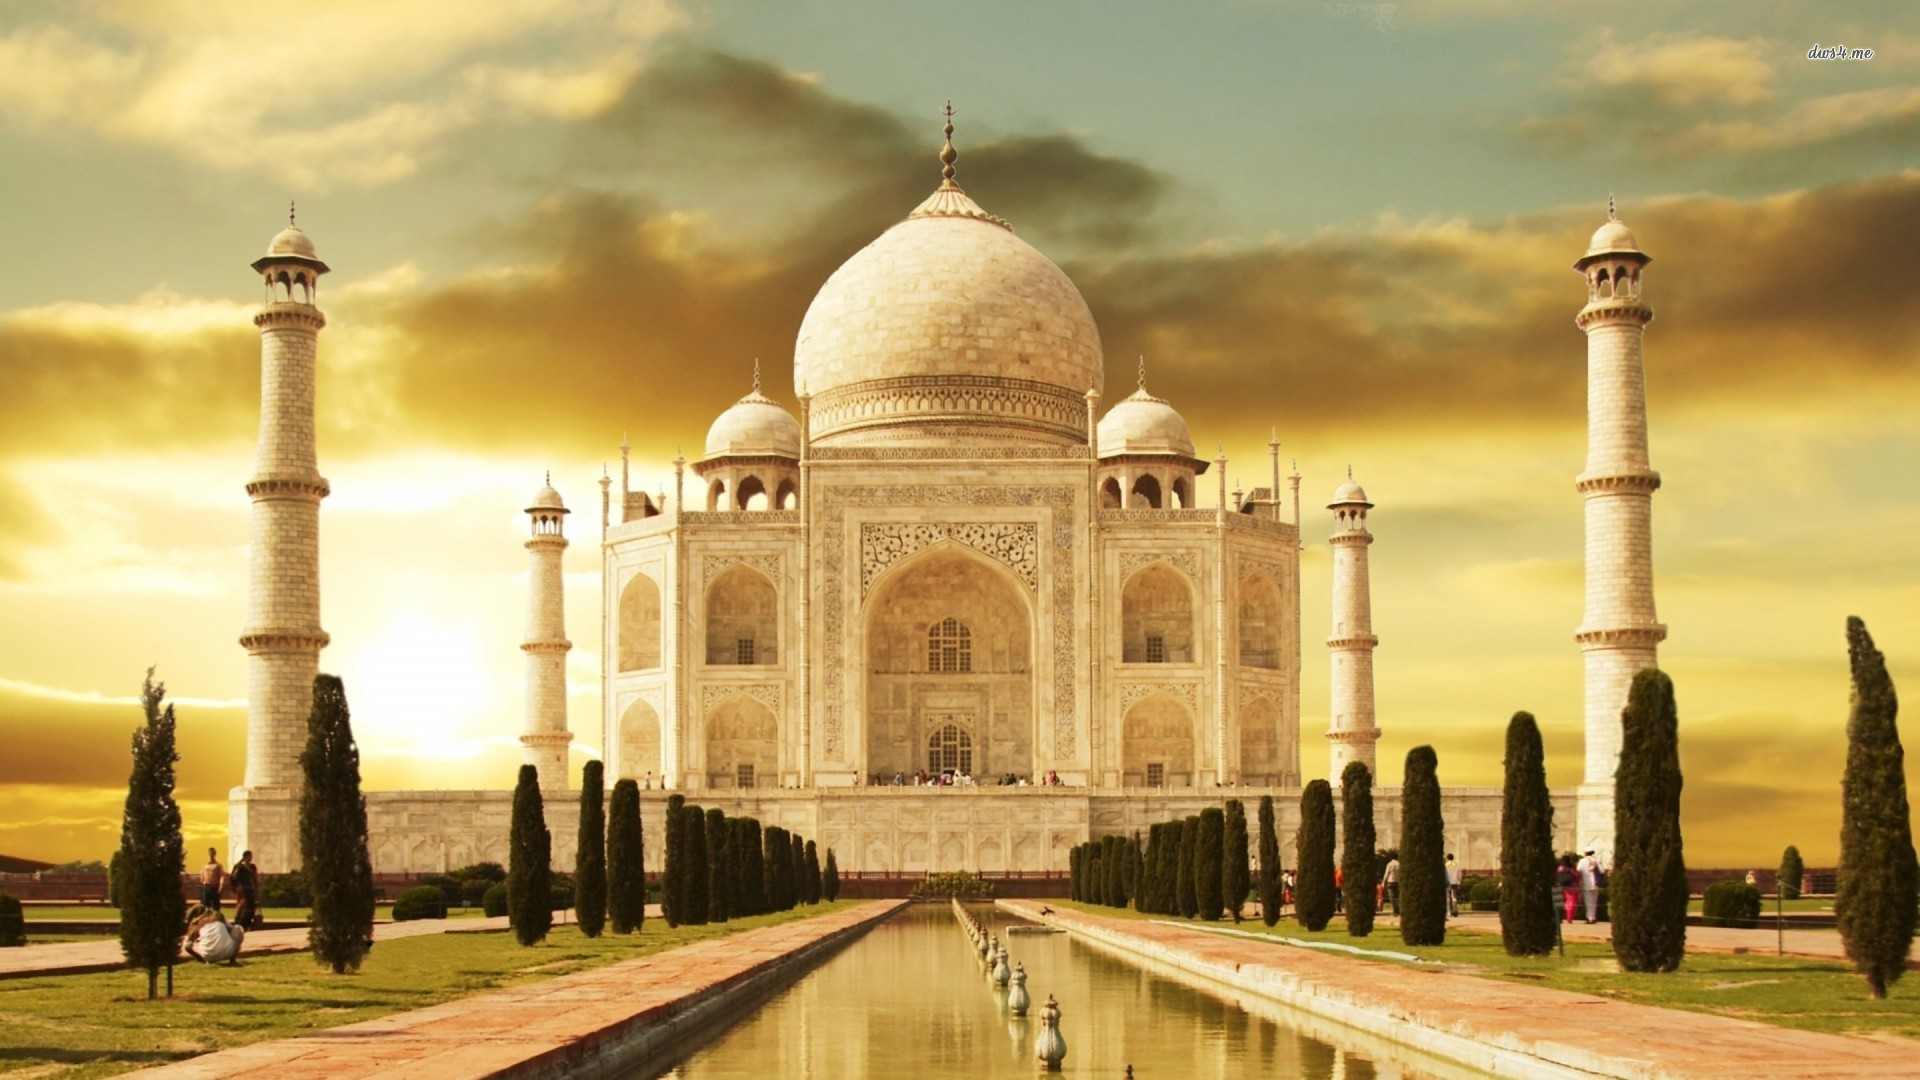 Taj Mahal At Night Wallpaper 3D